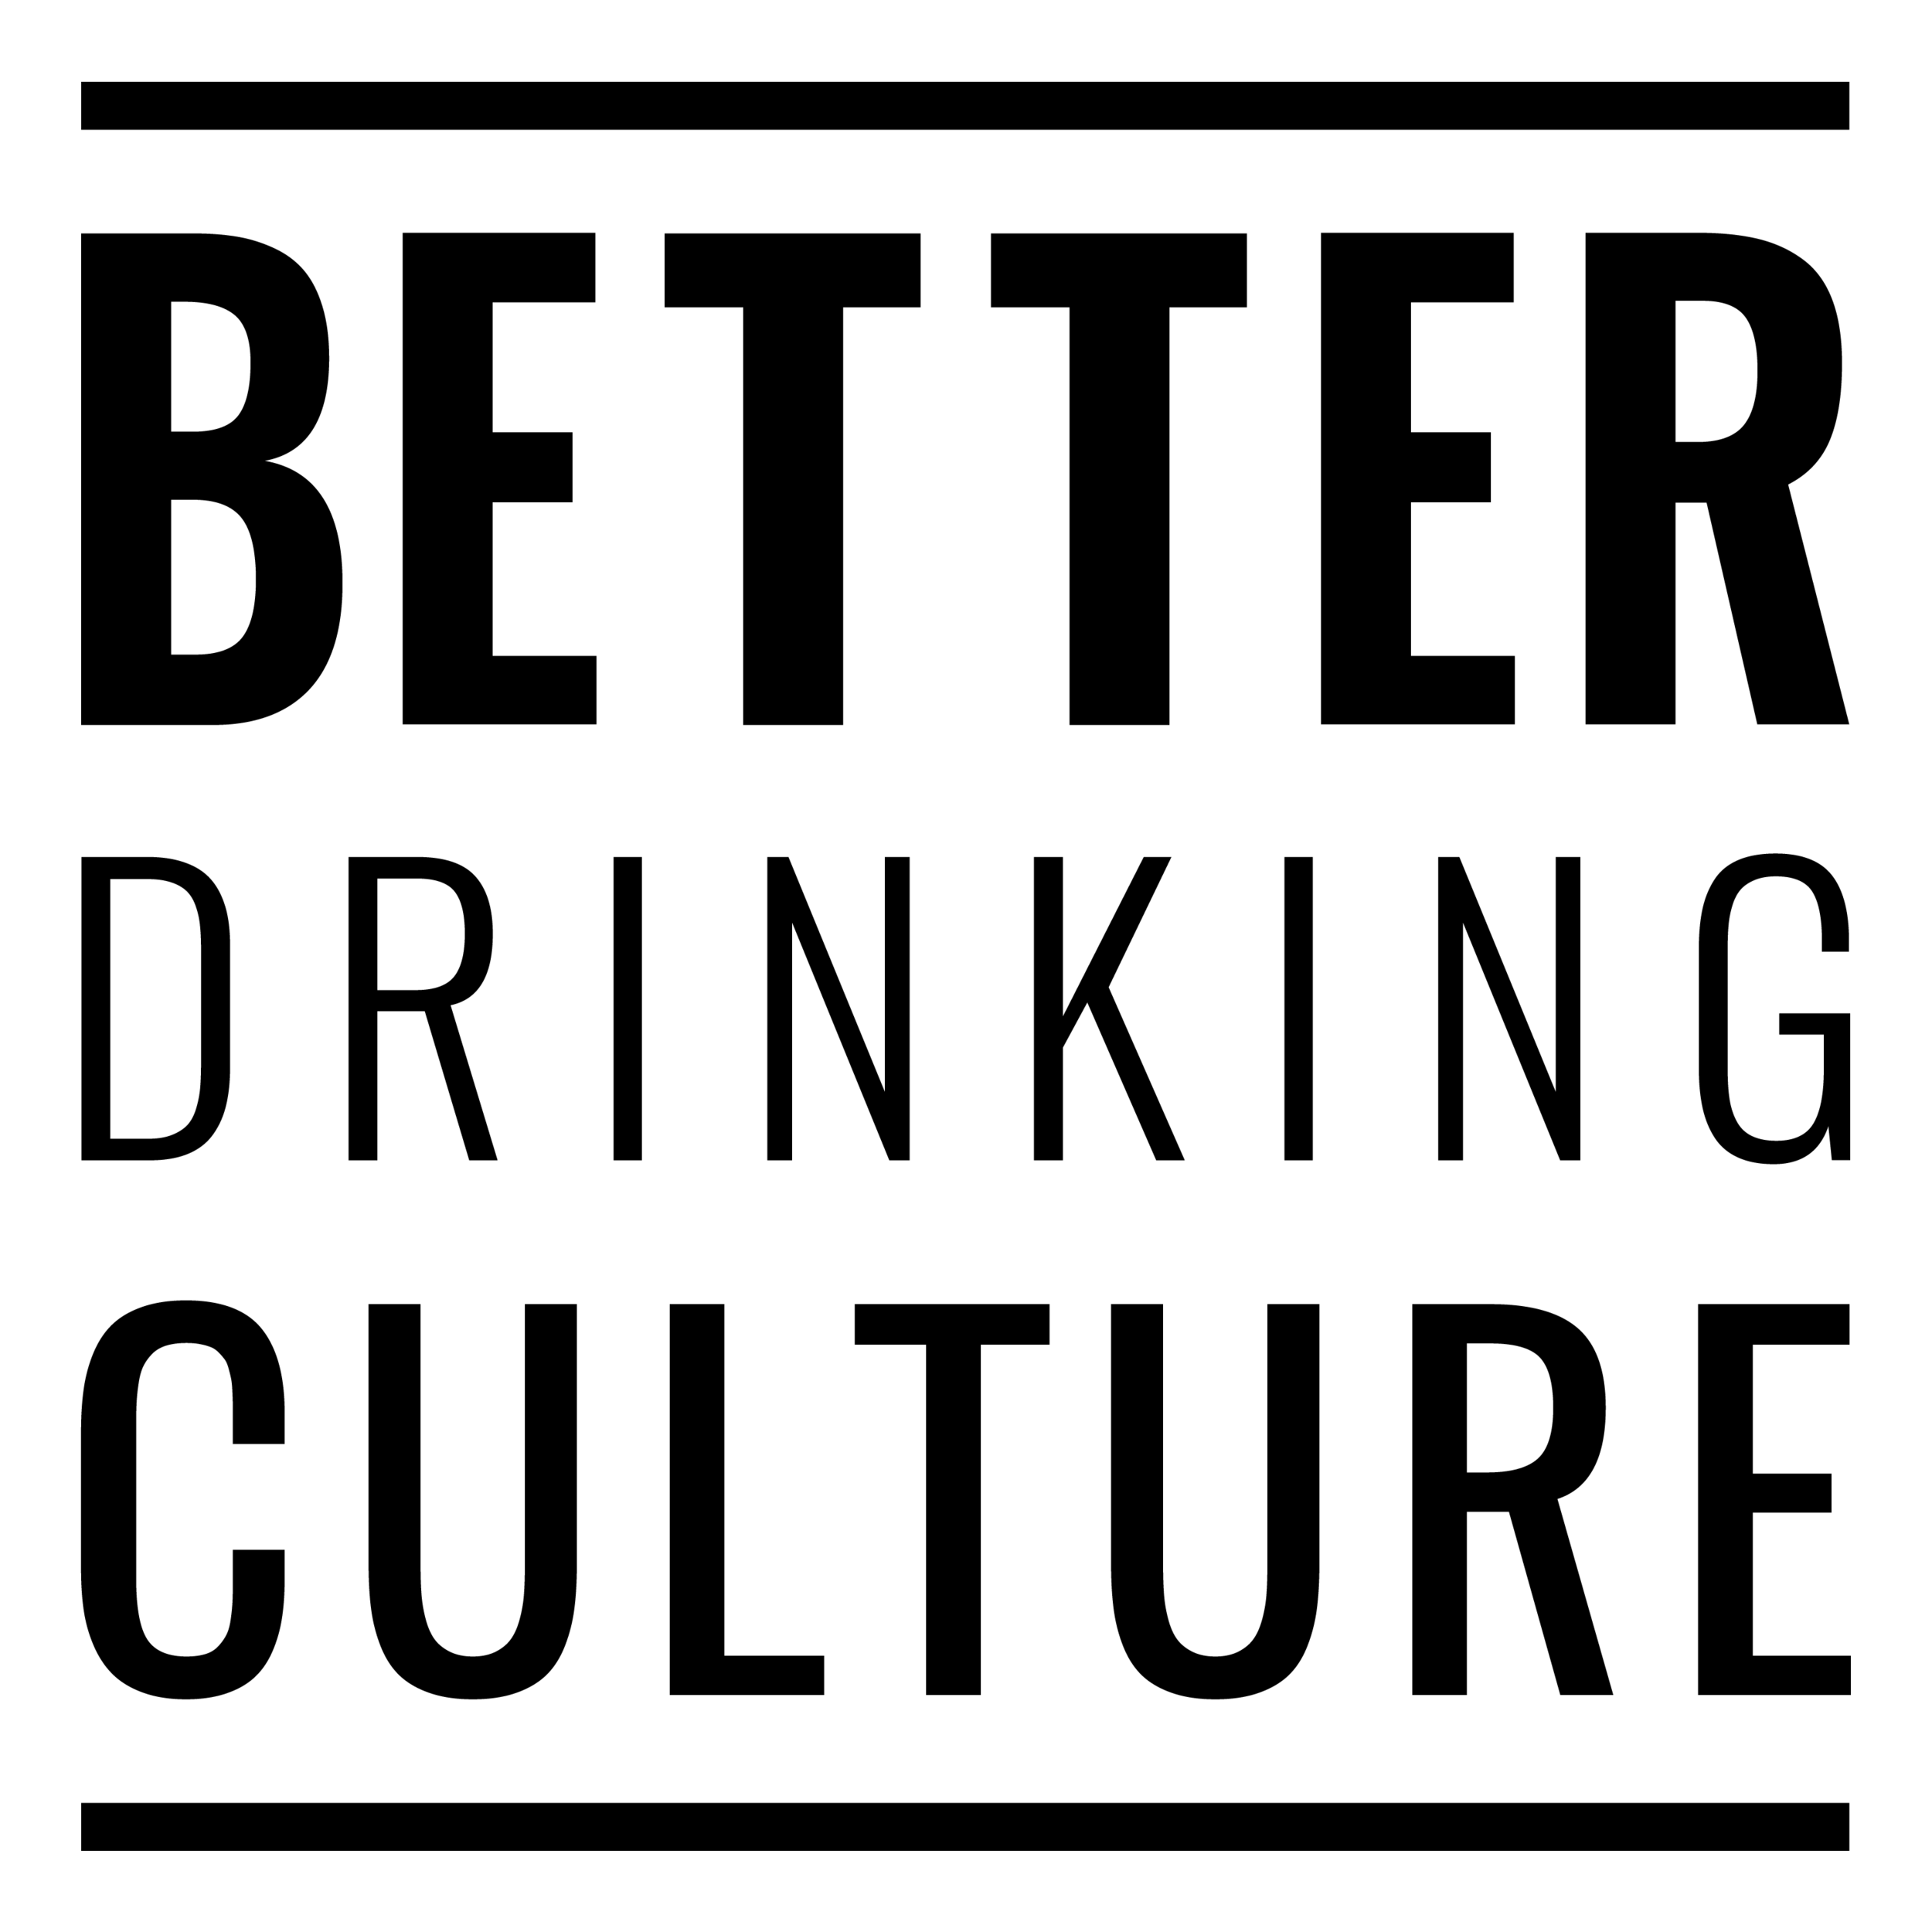 BDC_logo_black on transparent.png